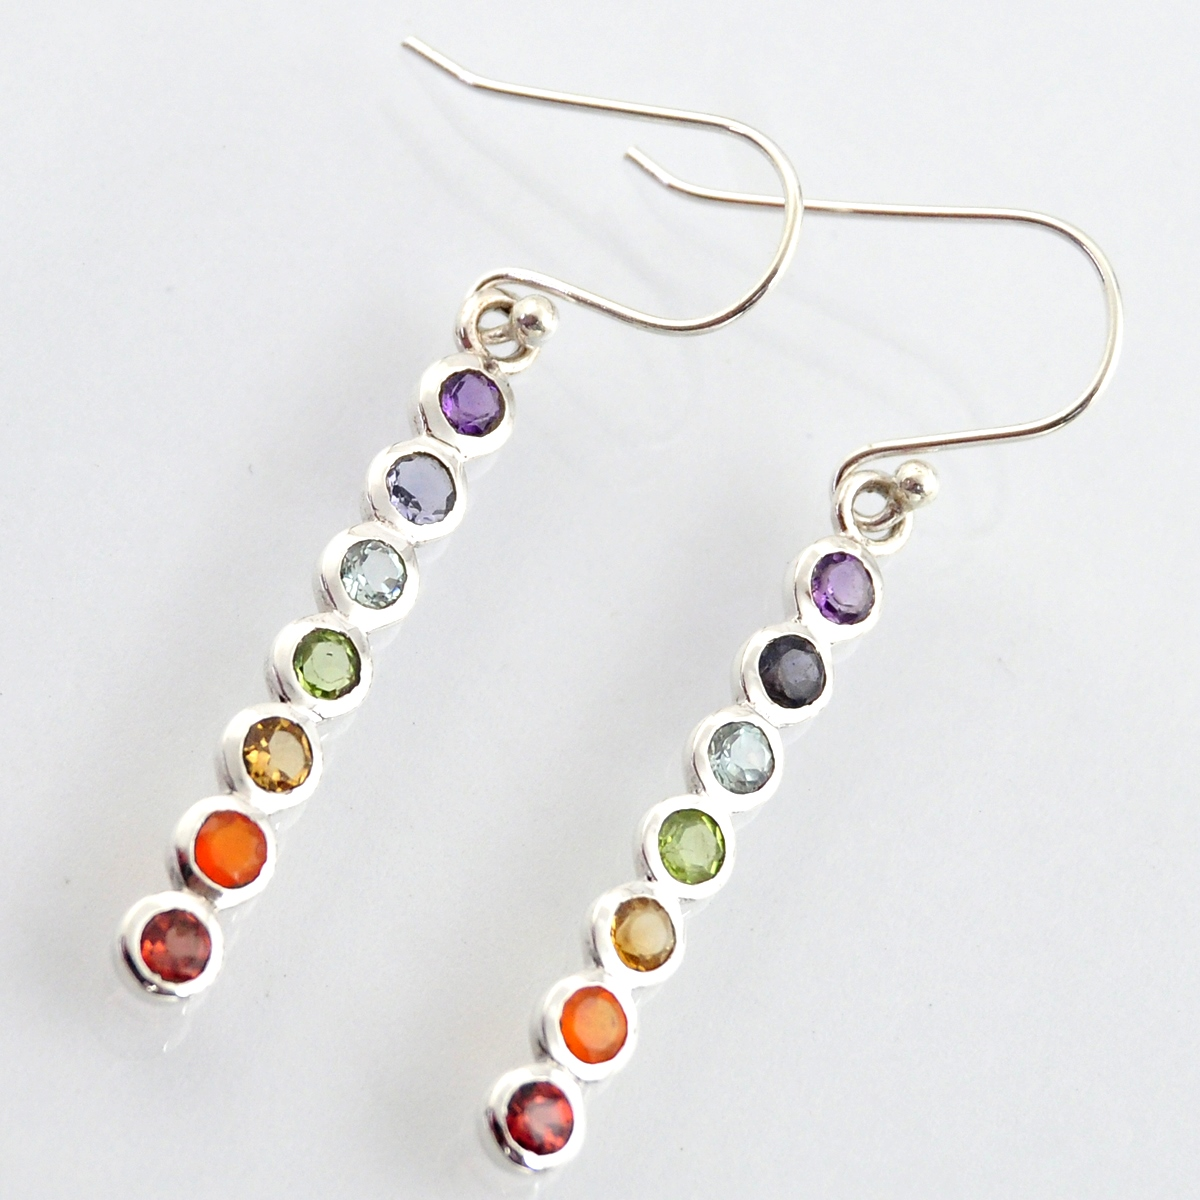 A pair of 925 silver rainbow drop earrings set with amethyst, iolite, topaz, peridot, citrine,